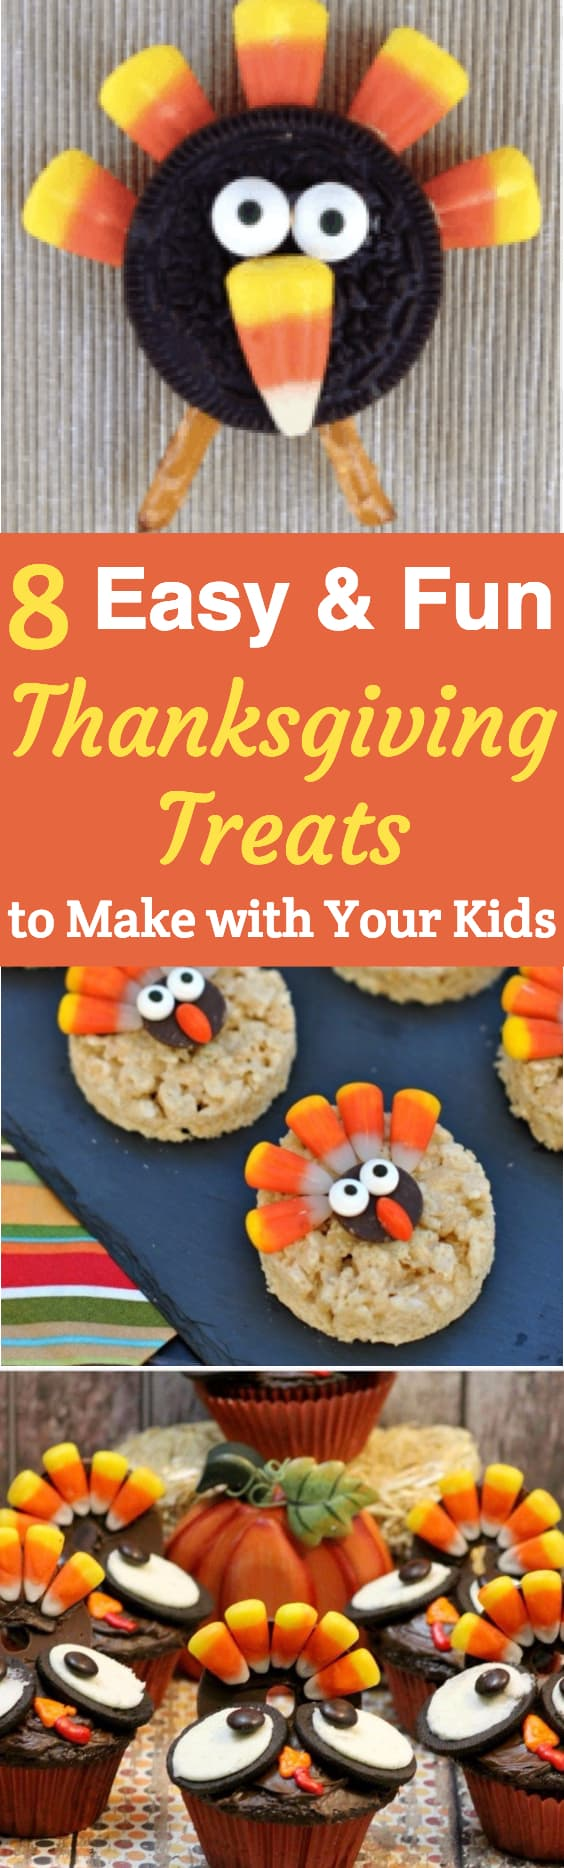 Easy and fun Thanksgiving treats to make with your kids:  8 adorable Thanksgiving desserts that the kids love to make.  Perfect for Thanksgiving desserts, class parties, or just as a fun Thanksgiving craft.